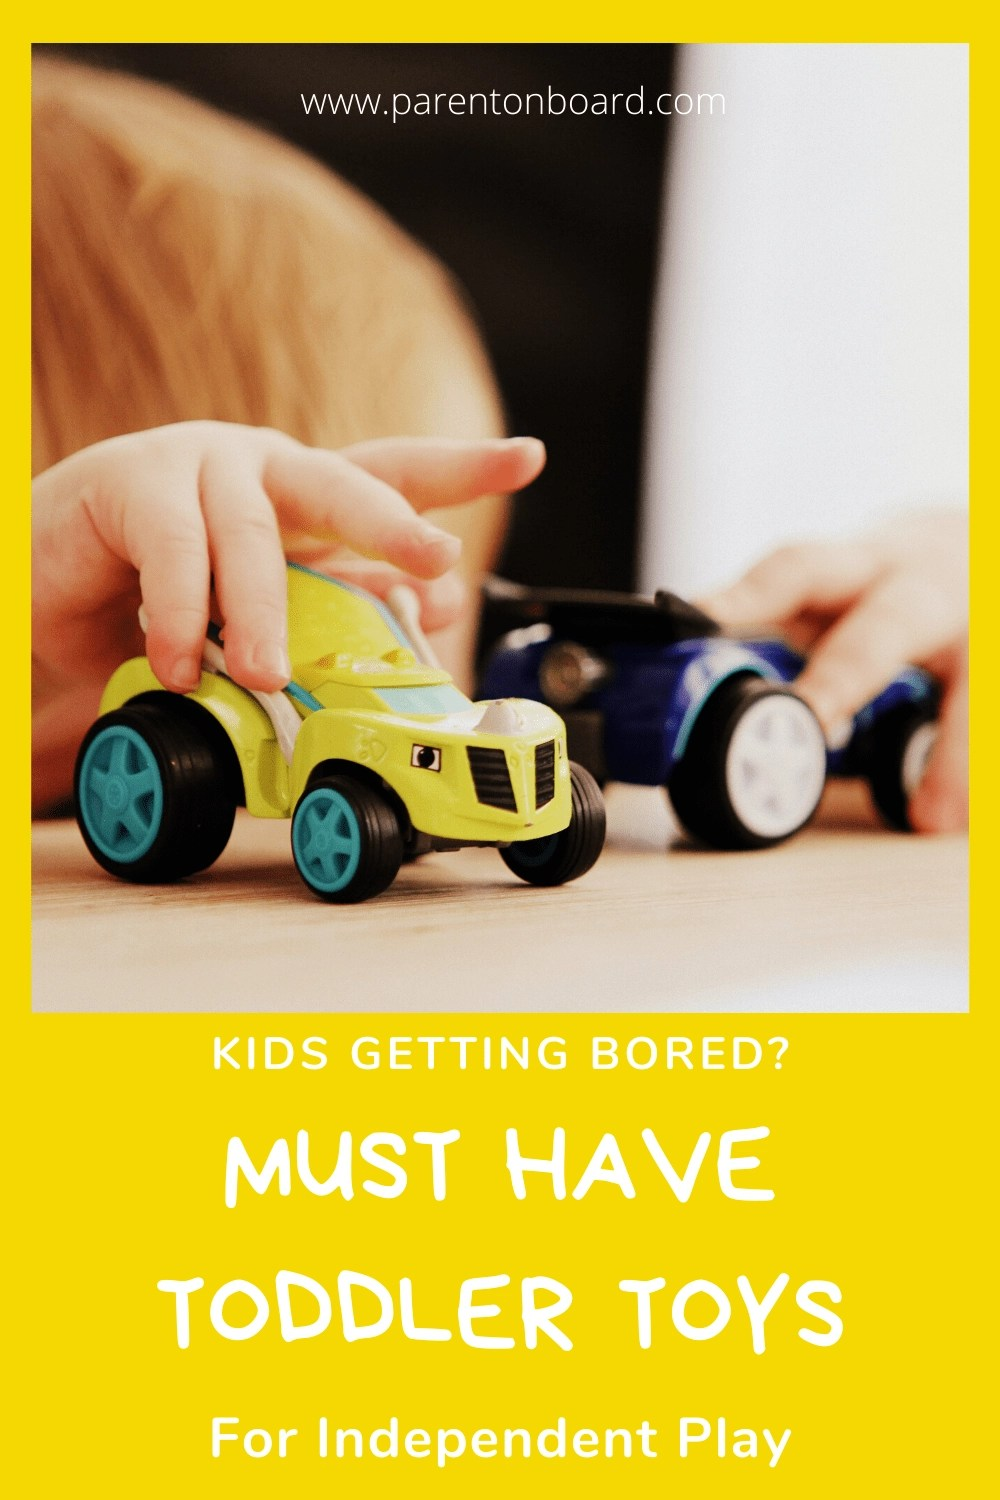 Must Have Toddler Toys for Independent Play